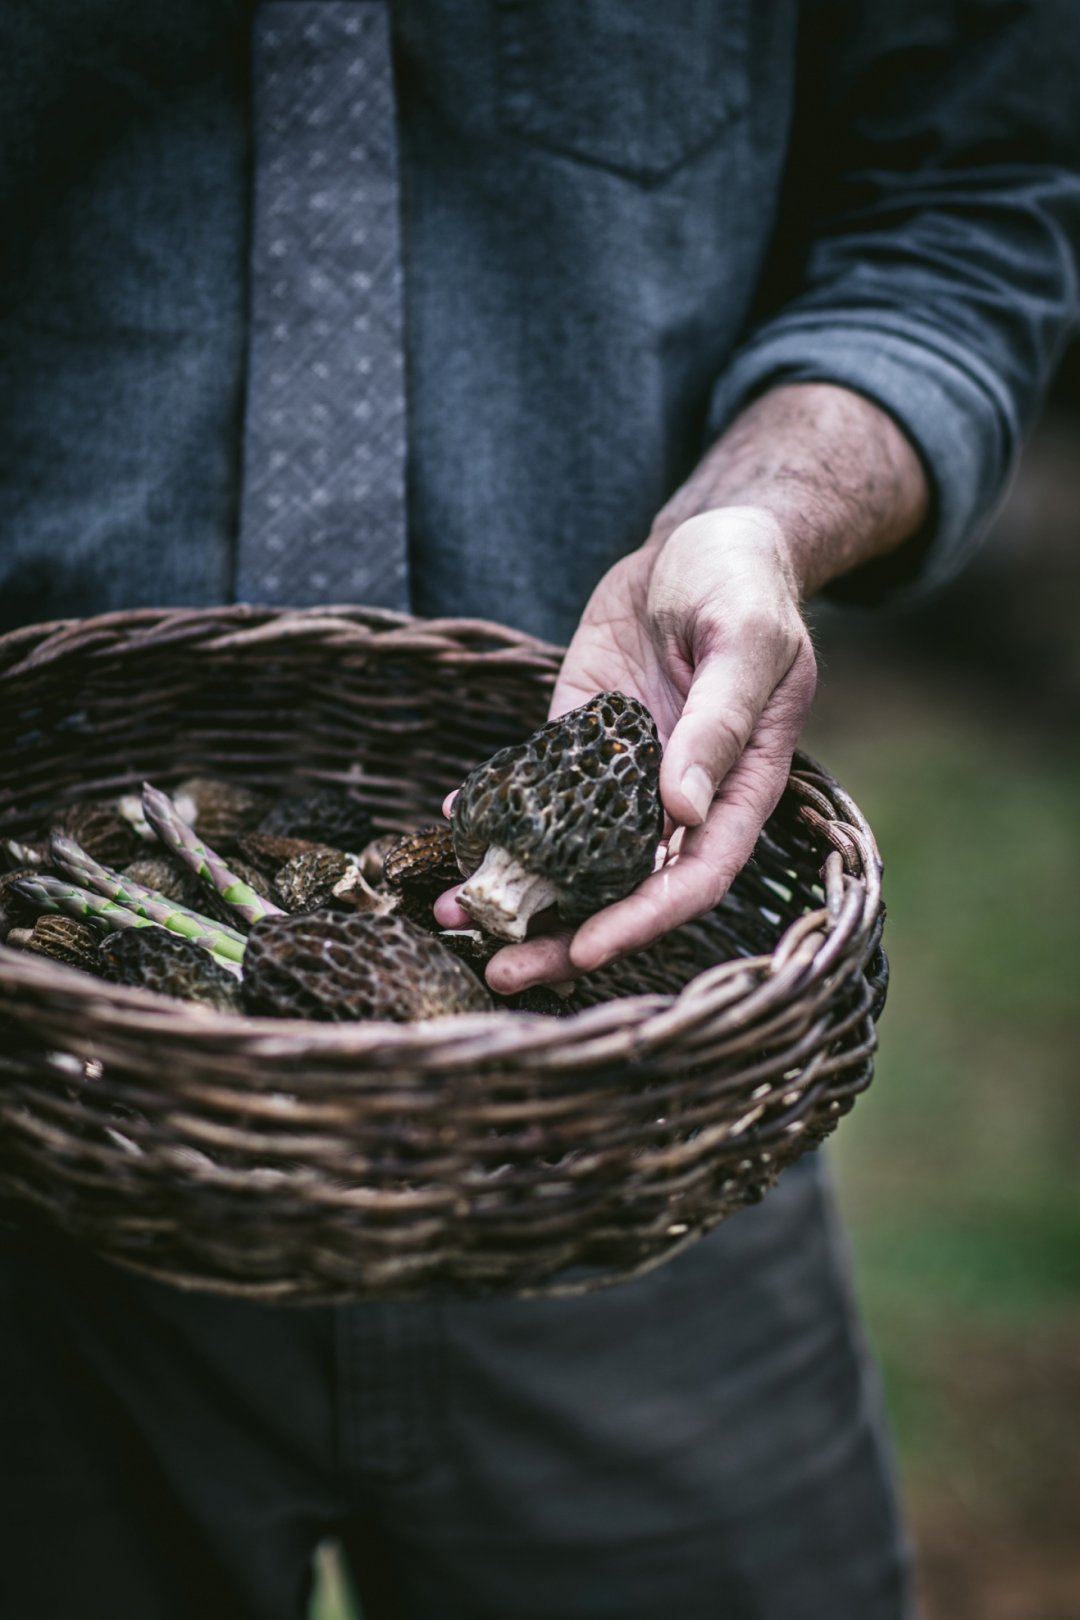 Man holding mushrooms in a basket